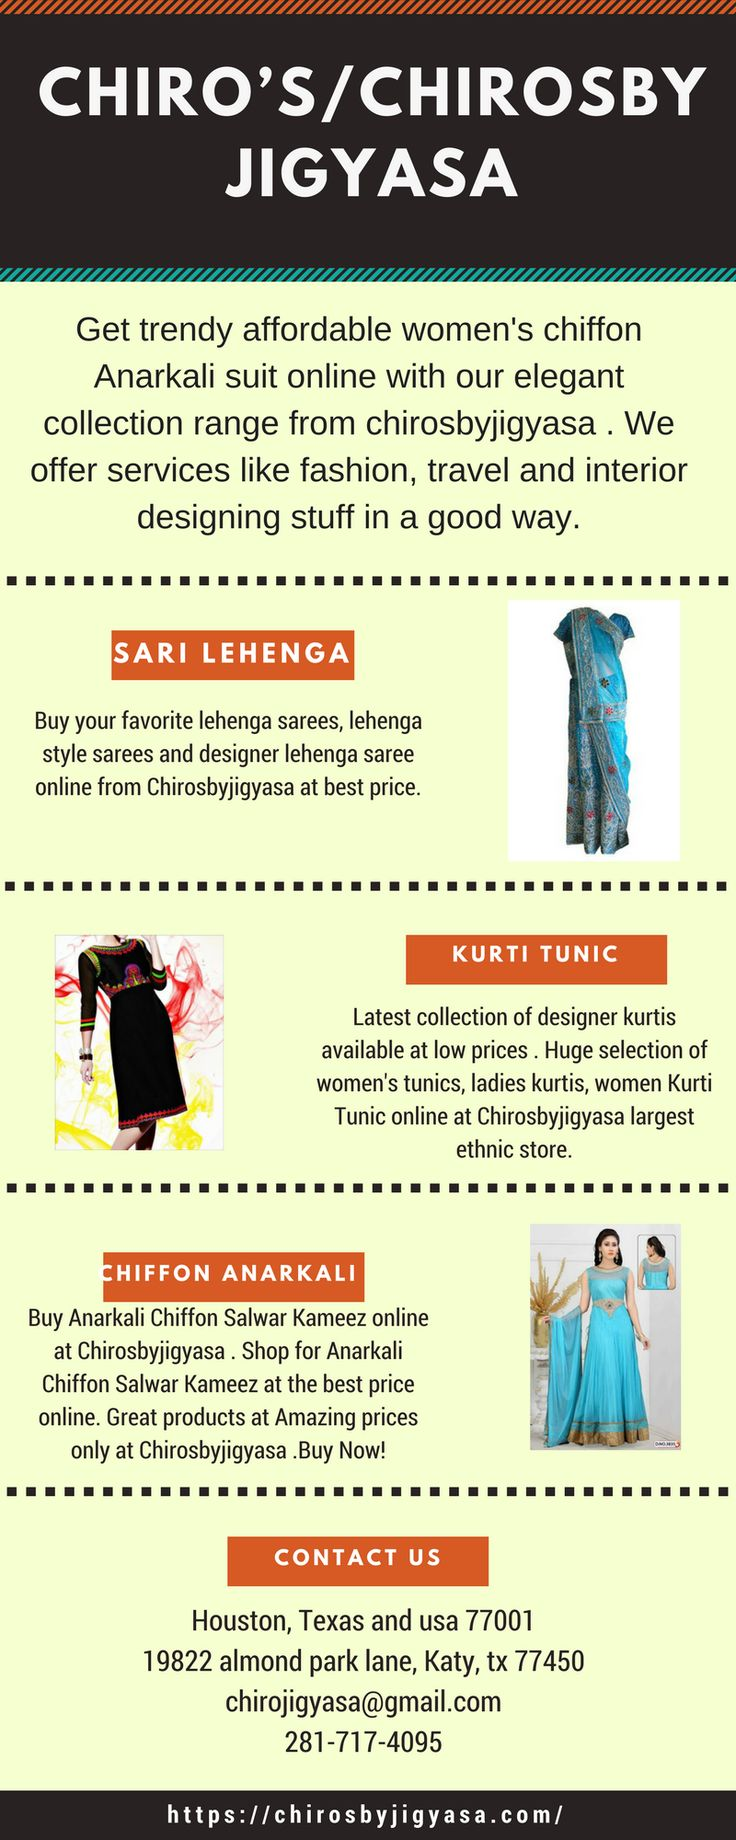 Buy your favorite lehenga sarees, lehenga style sarees and designer lehenga saree online from Chirosbyjigyasa at best price. Shop from best ever lehenga style saree, lengha sari and lehenga sarees collection and get express shipping.